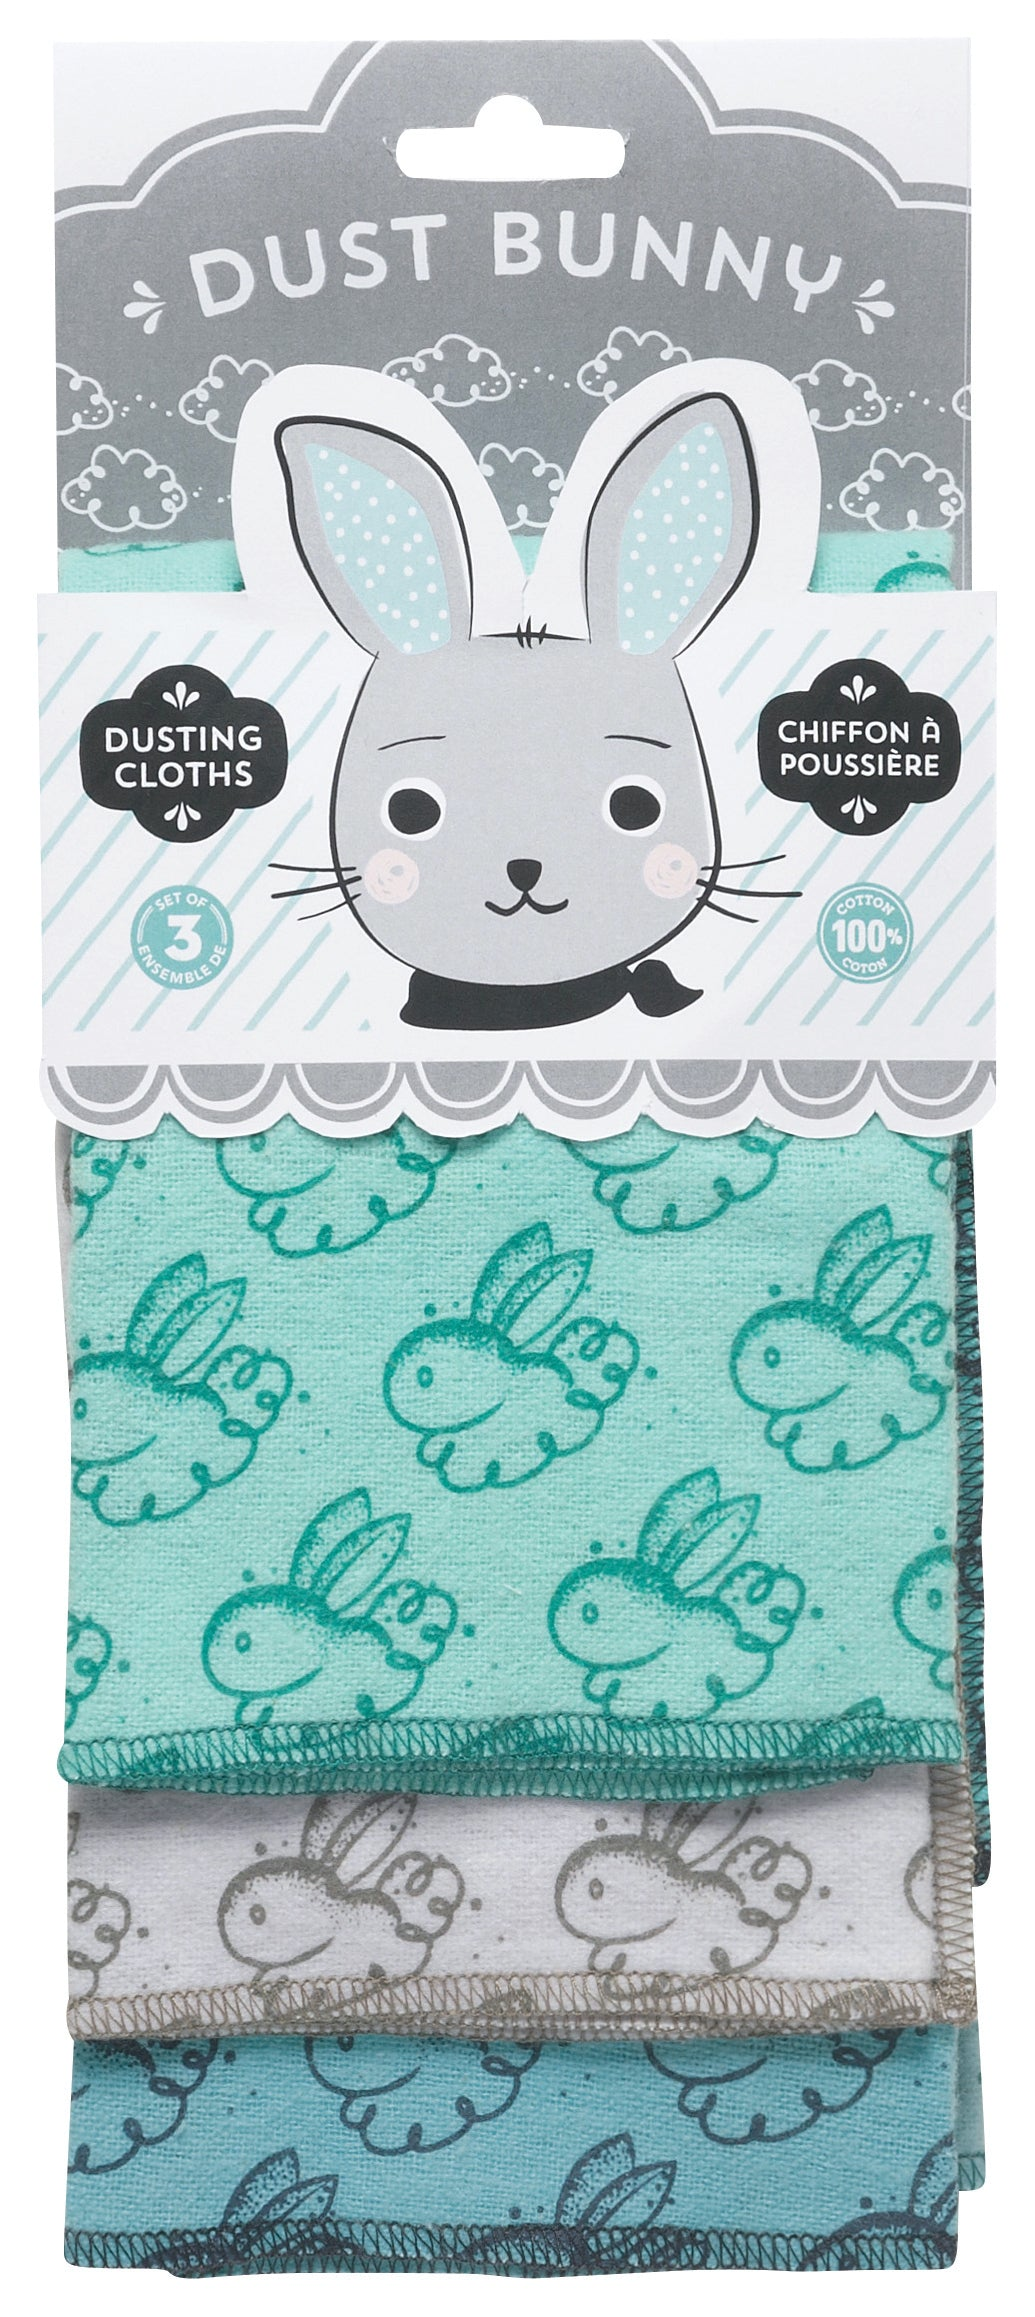 Dust Bunny Dusting Cloths